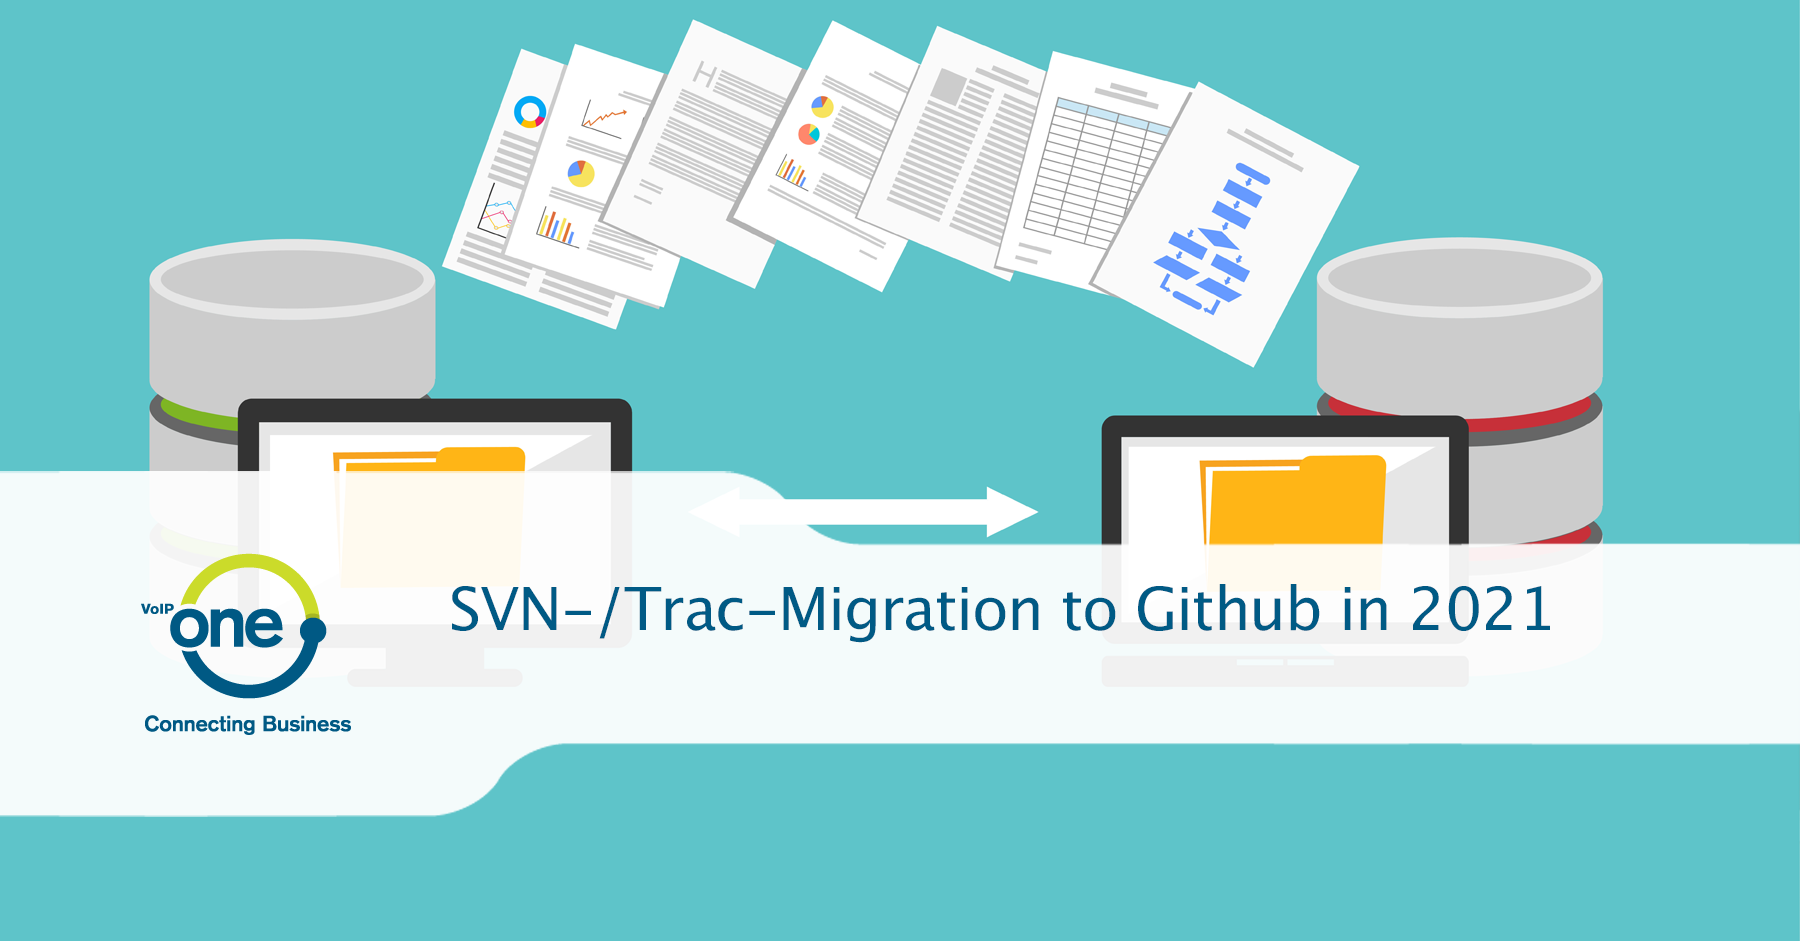 SVN-/Trac-Migration to Github in 2021